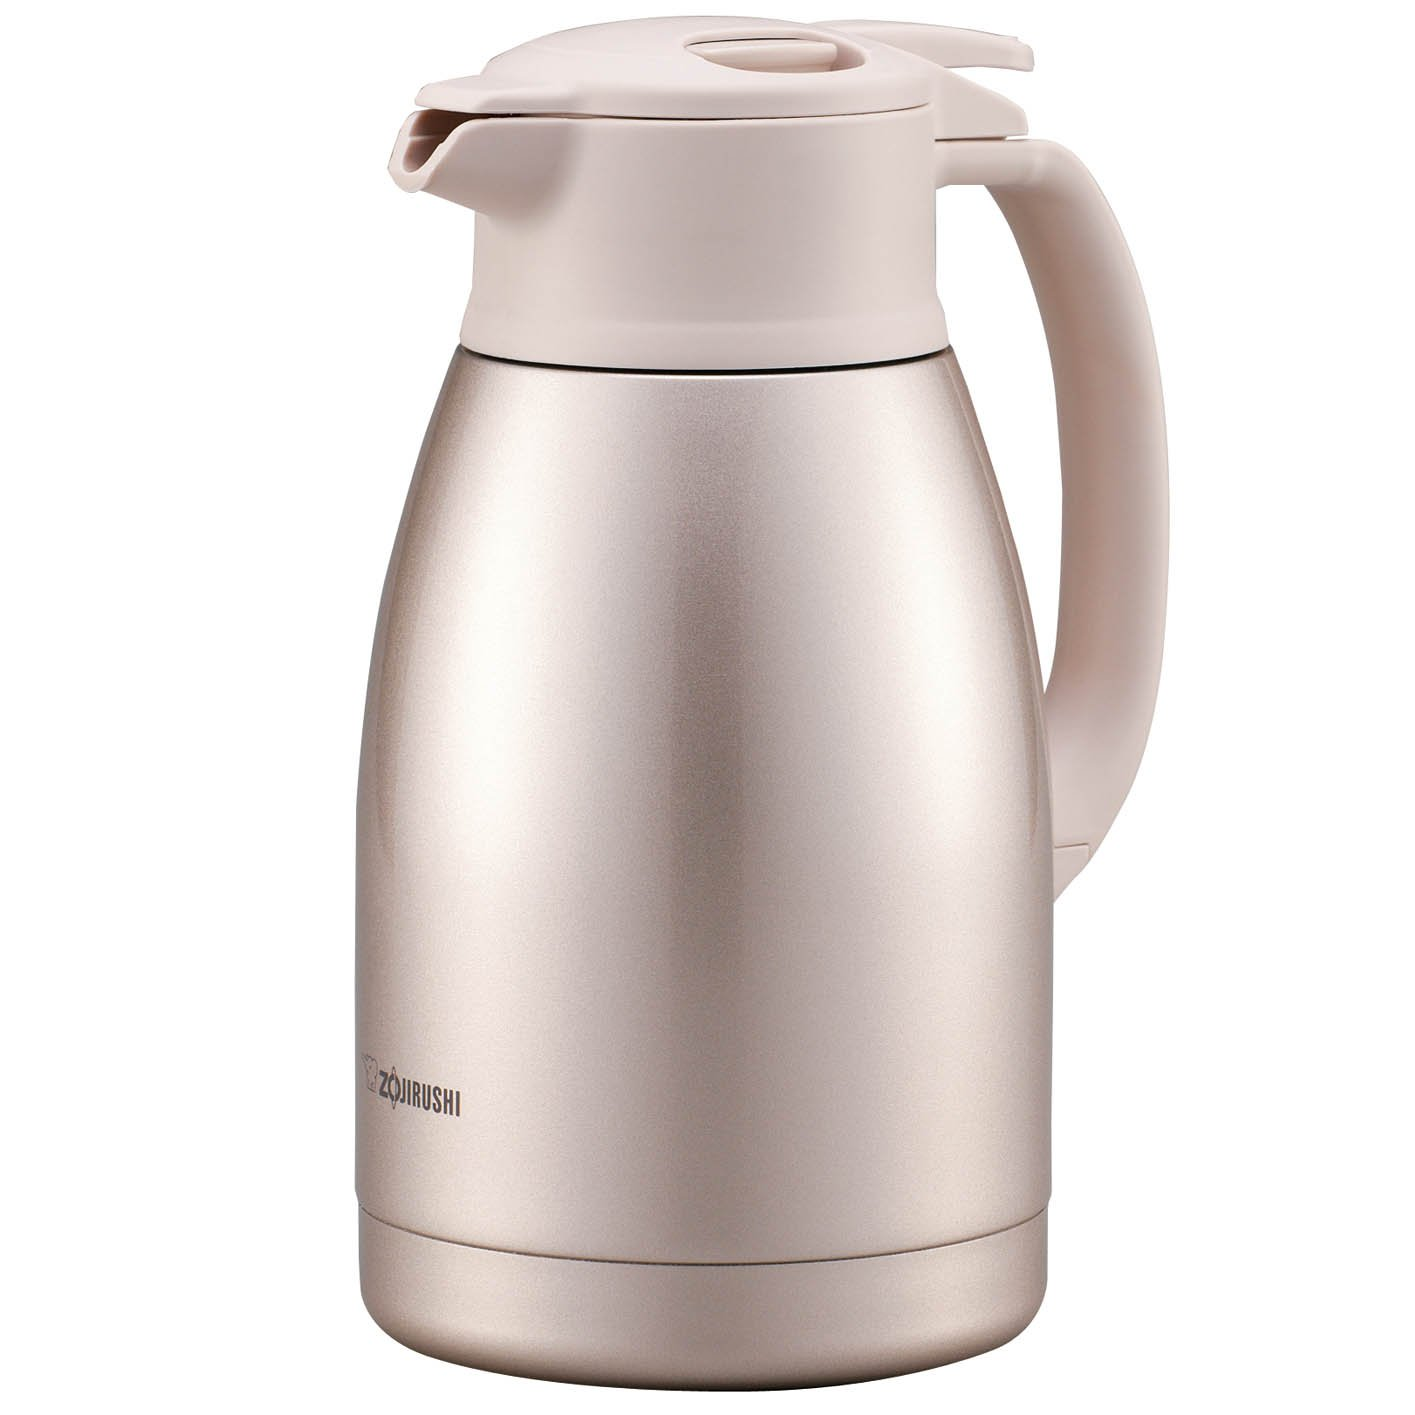 Zojirushi Stainless Steel Pot 1.5L Pink Silver (SH-HA15-PF)